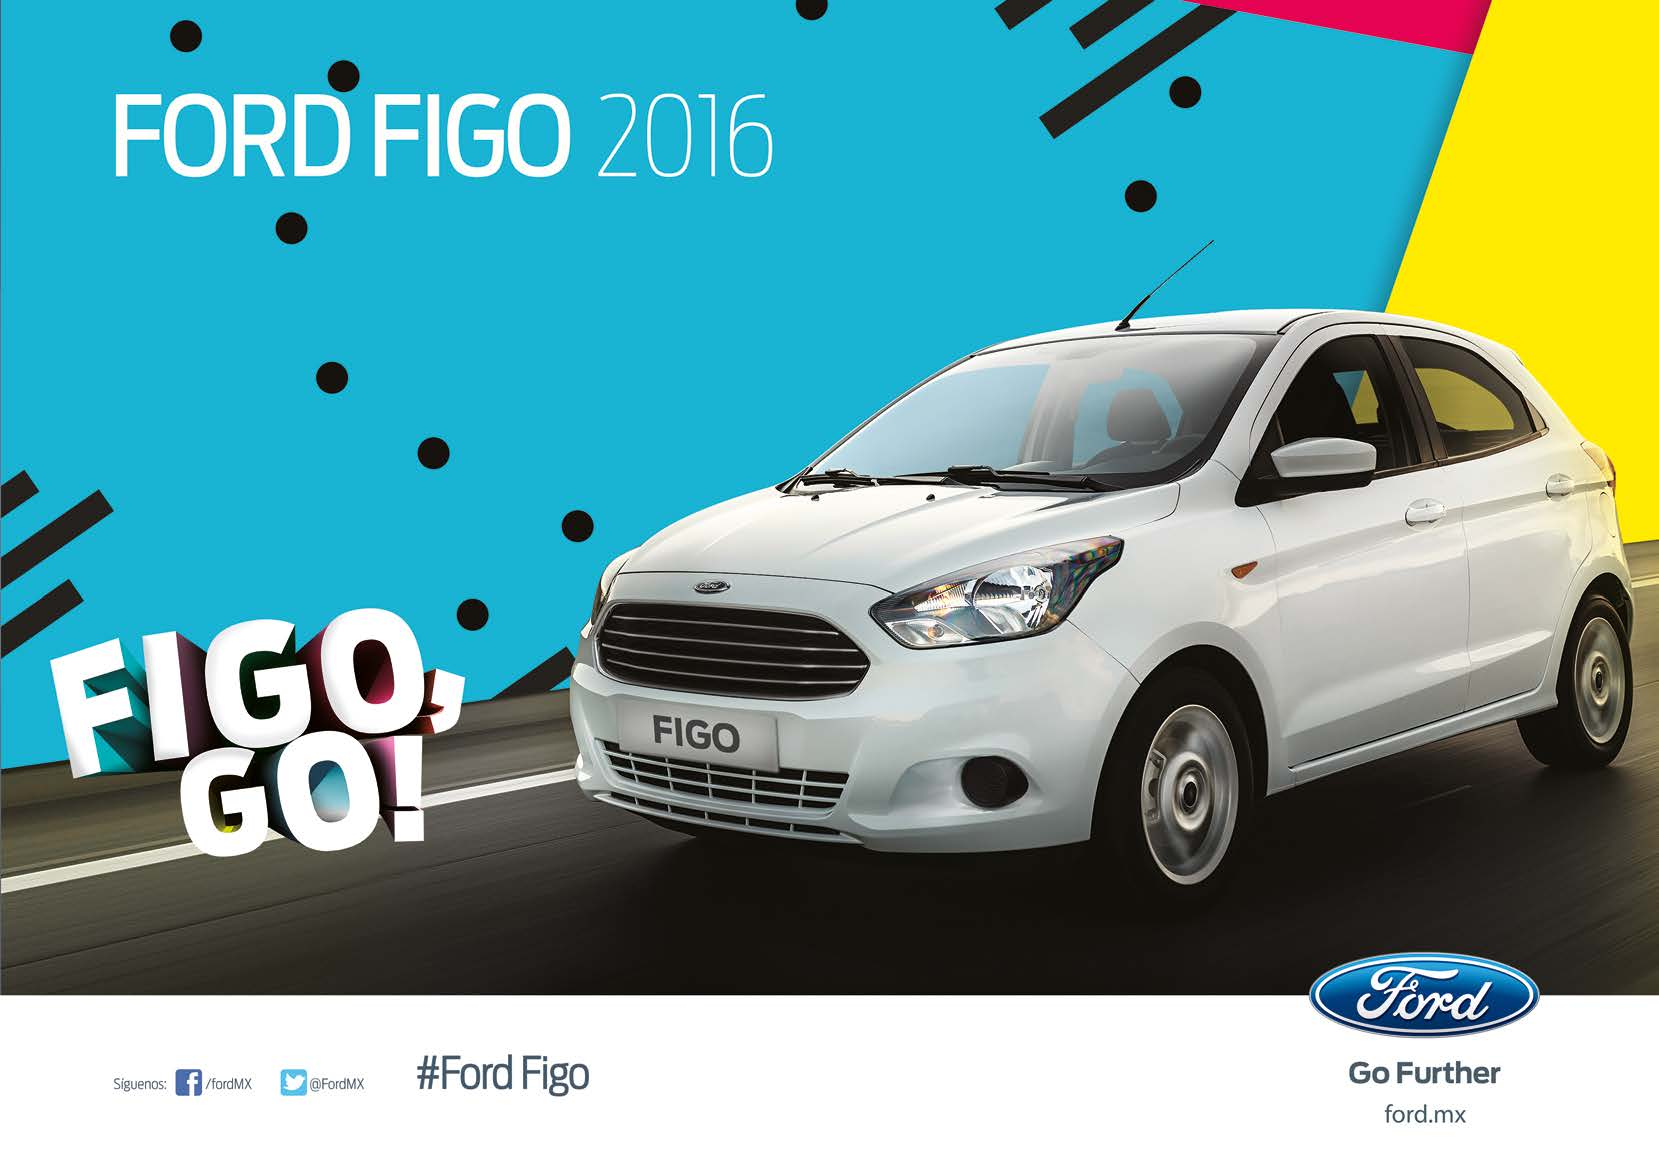 Click to enlarge image Especificaciones-Ford-Figo-hatchback-2016_Página_1.jpg